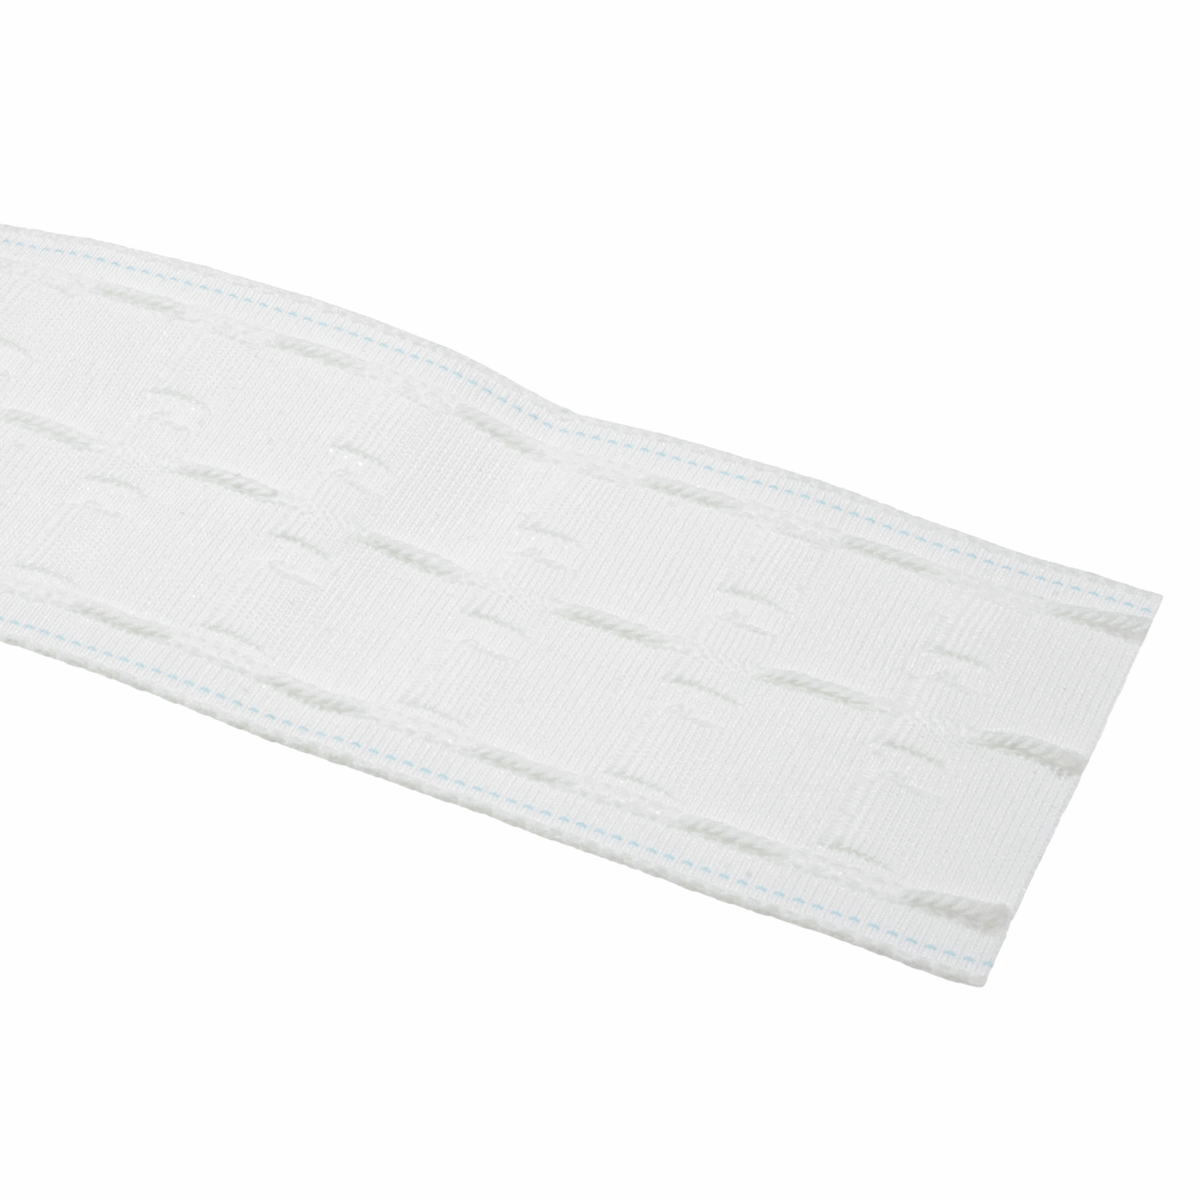 Curtain Tape: Woven Pocket Tape: Premium: Pencil Pleat 76mm (3in): White